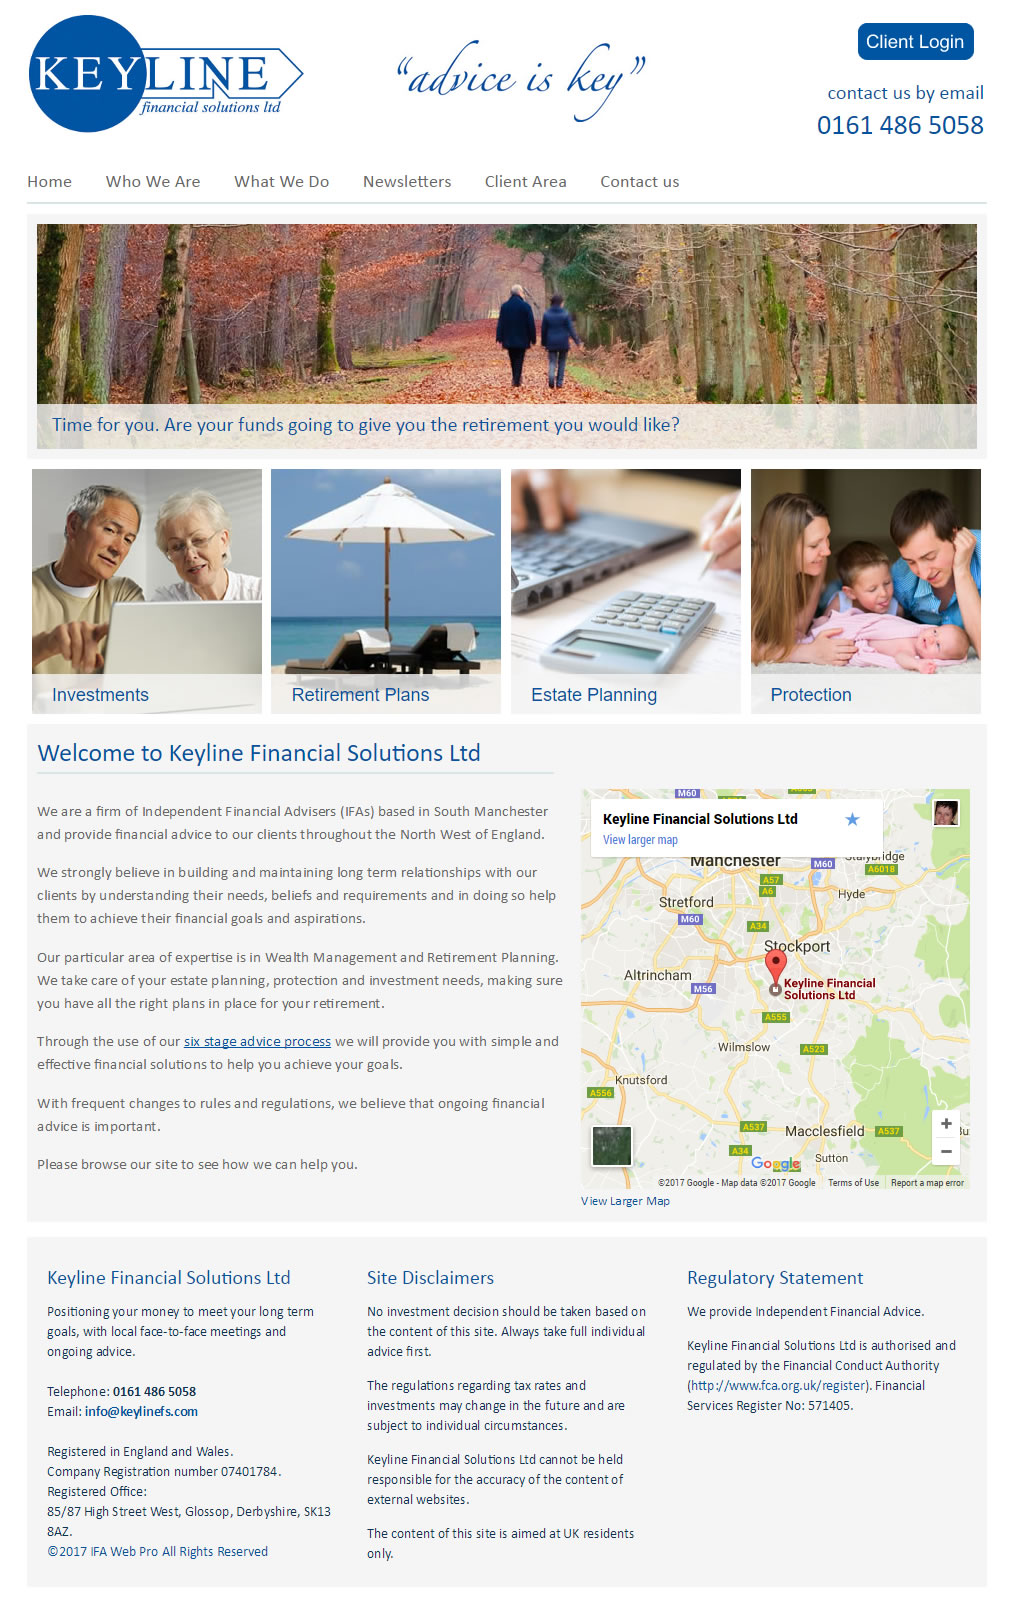 Financial Adviser website redesign - Keyline Financial Solutions